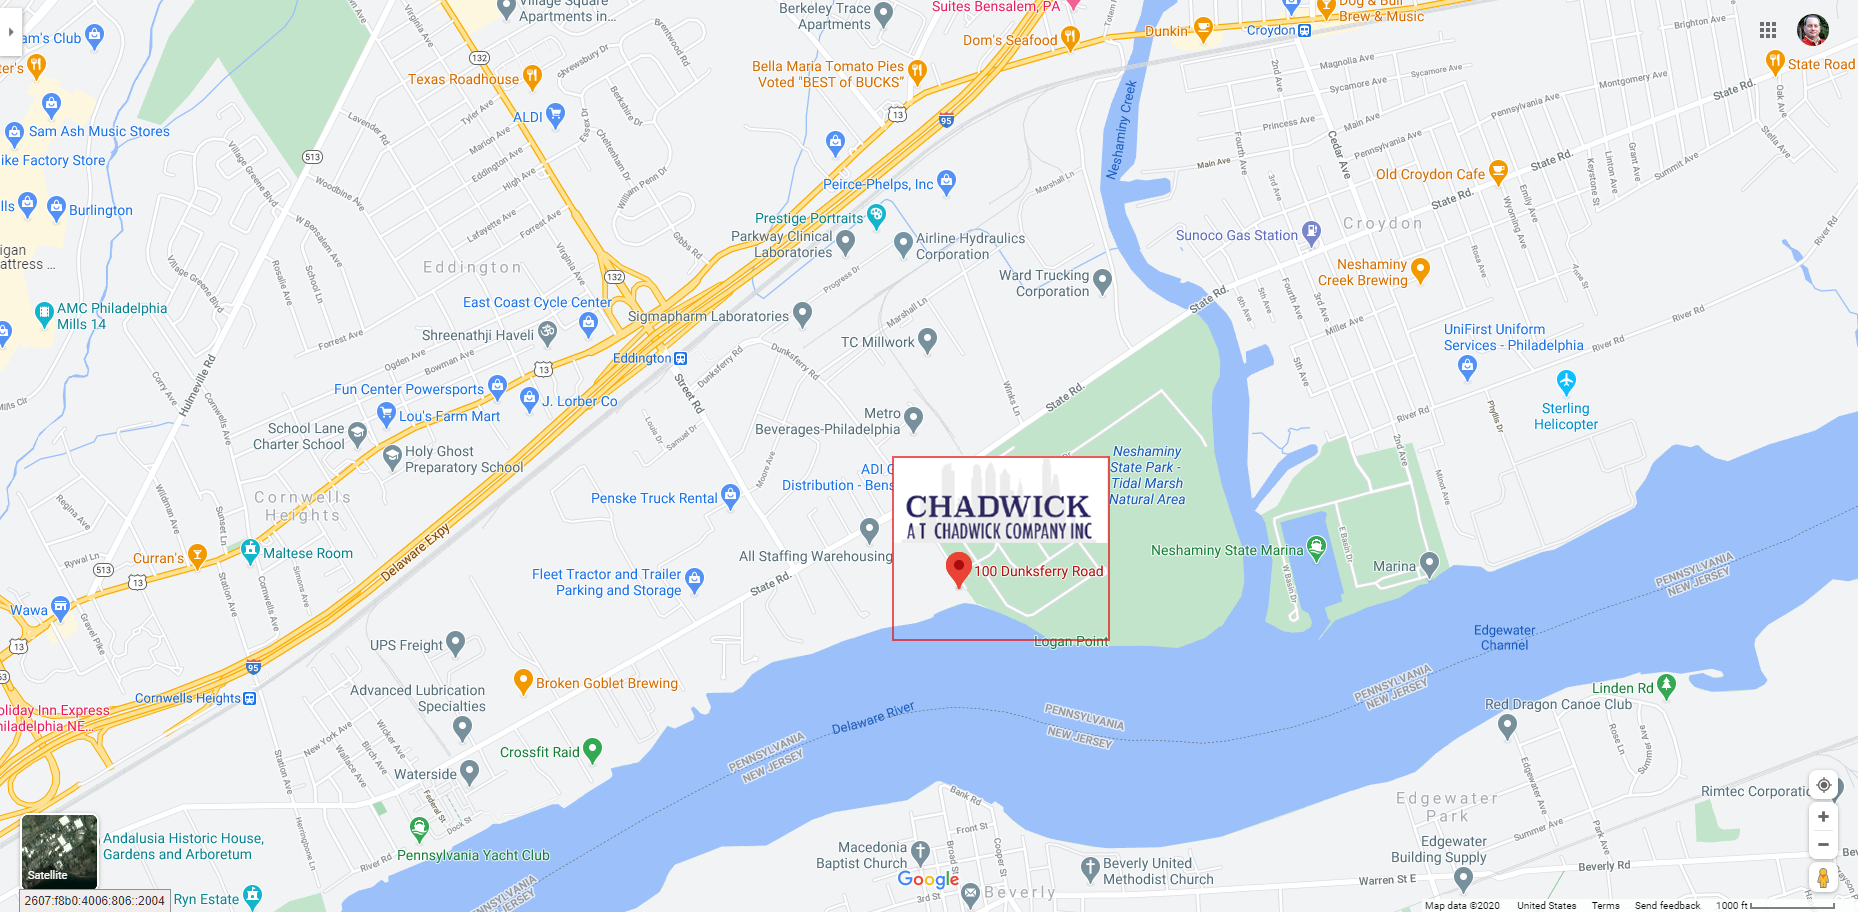 Google map with logo